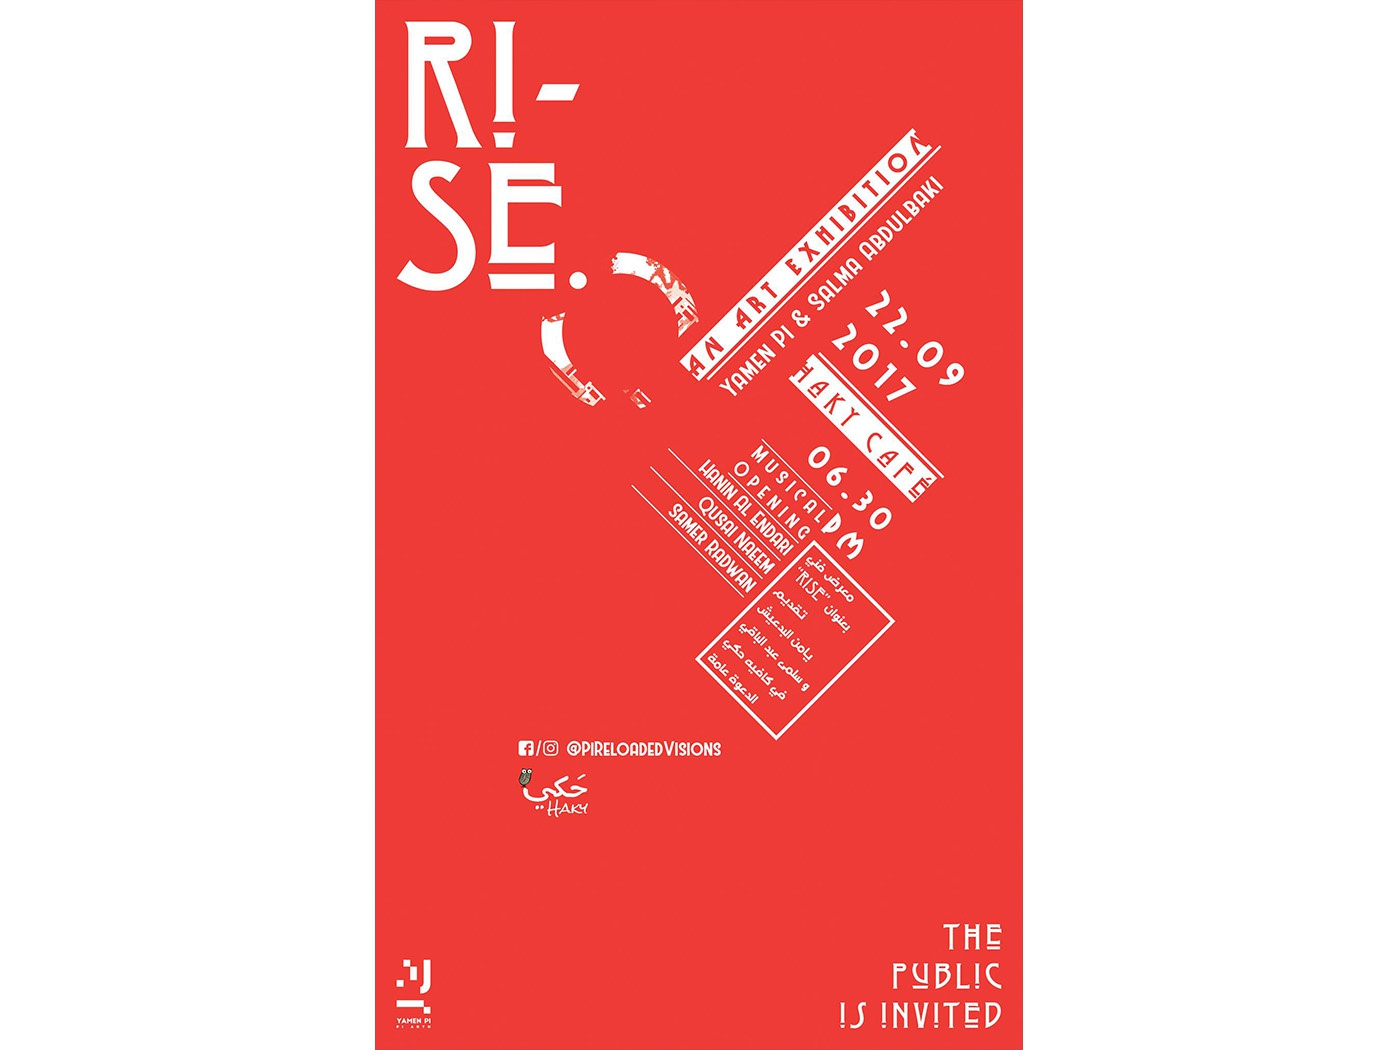 RISE Exhibition - Poster III exhibition rise painting drawing artistic artist art syria music poster design graphic graphic design